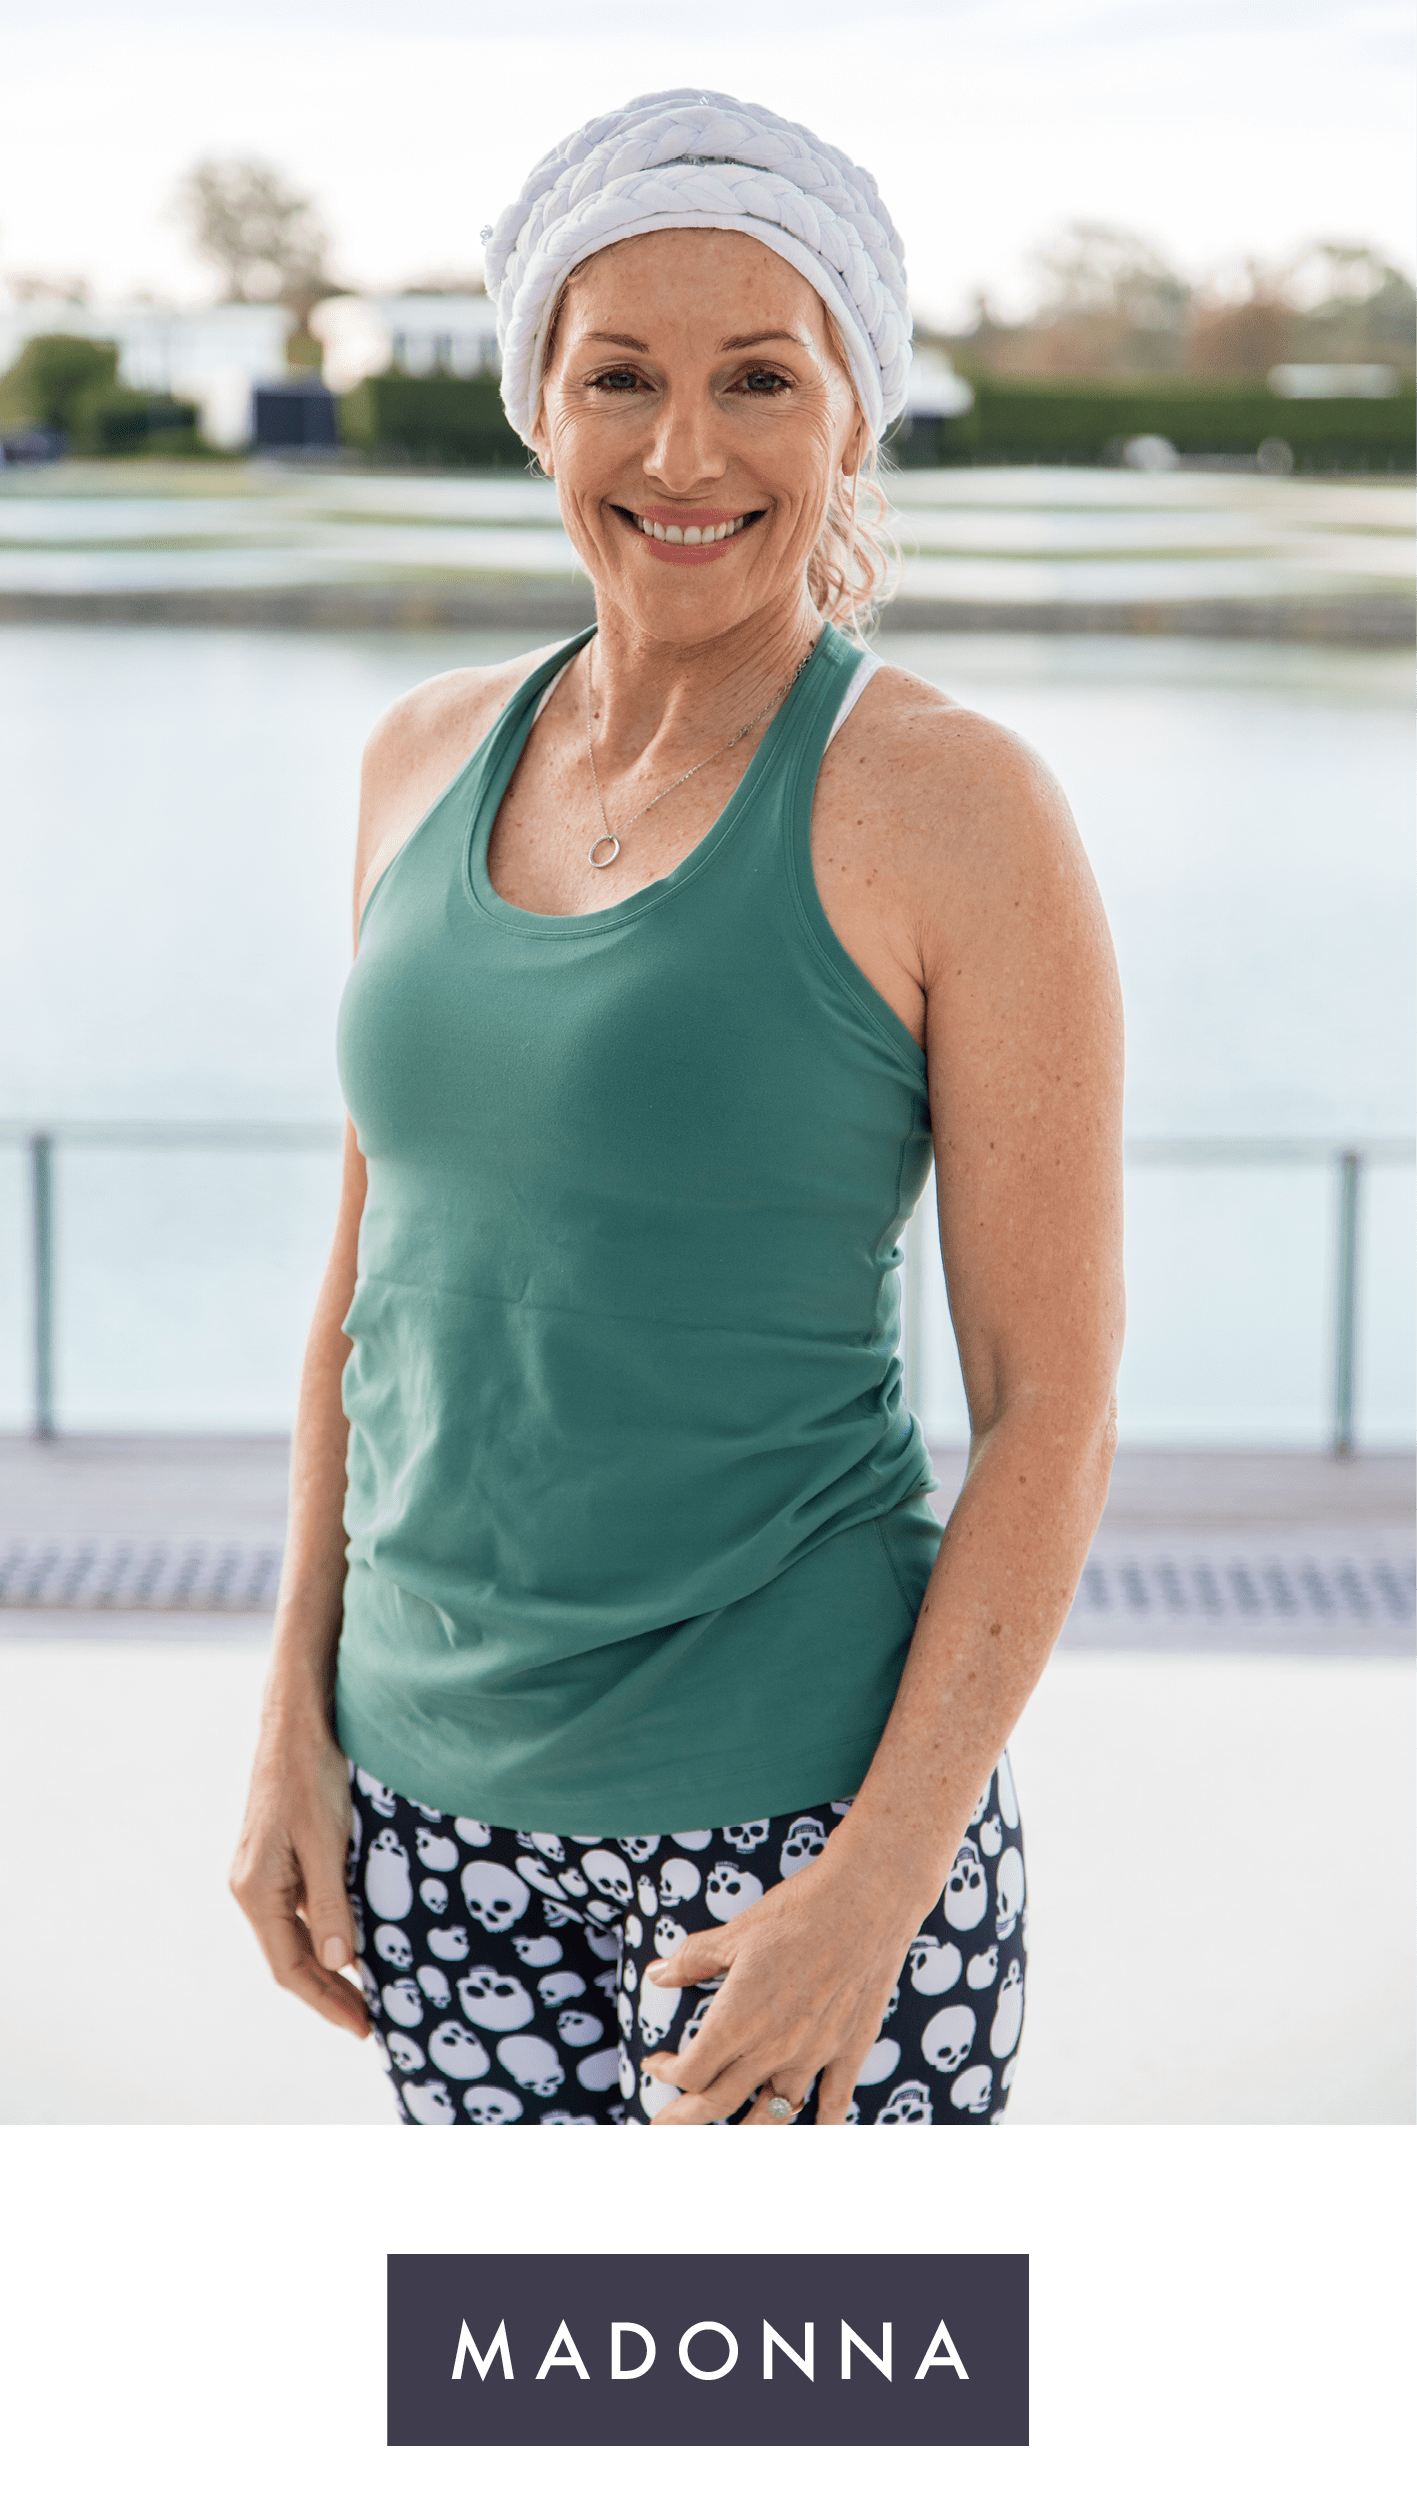 """Madonna has enjoyed every minute of teaching community Yoga since 2002 and in the past 5 years on Yoga teacher training programs in Australia and China. She runs enriching Yoga Retreats on the Gold Coast, Byron Bay and in Bali.  Madonna is highly respected for her genuine nature, positive disposition and distinct creative style. Her yoga teaching is influenced by the traditions of Hatha, Vinyasa, Kundalini (as taught by Yogi Bhajan) and the modern approach to Yin yoga.  Madonna's past studies and careers include Exercise-Health science teaching, Nutrition and Personal Training. She is a Zen Thai Shiatsu massage therapist and qualified in the therapeutic use of pure essential oils.  Off the mat, Madonna continues to share mantras and philosophy in her book  'Zen Soul Your Life' ( 2013)  An inspirational guide to inspire mindfulness, yoga benefits and conscious food choices.  """"Yoga (in it's many forms) is a unique healing system that guides us to soothe our minds and release body tension. This authentic connection to our true nature can enrich our lives with an inner sense of freedom, genuine true purpose and expanded creativity.""""  ~  Madonna Williams"""